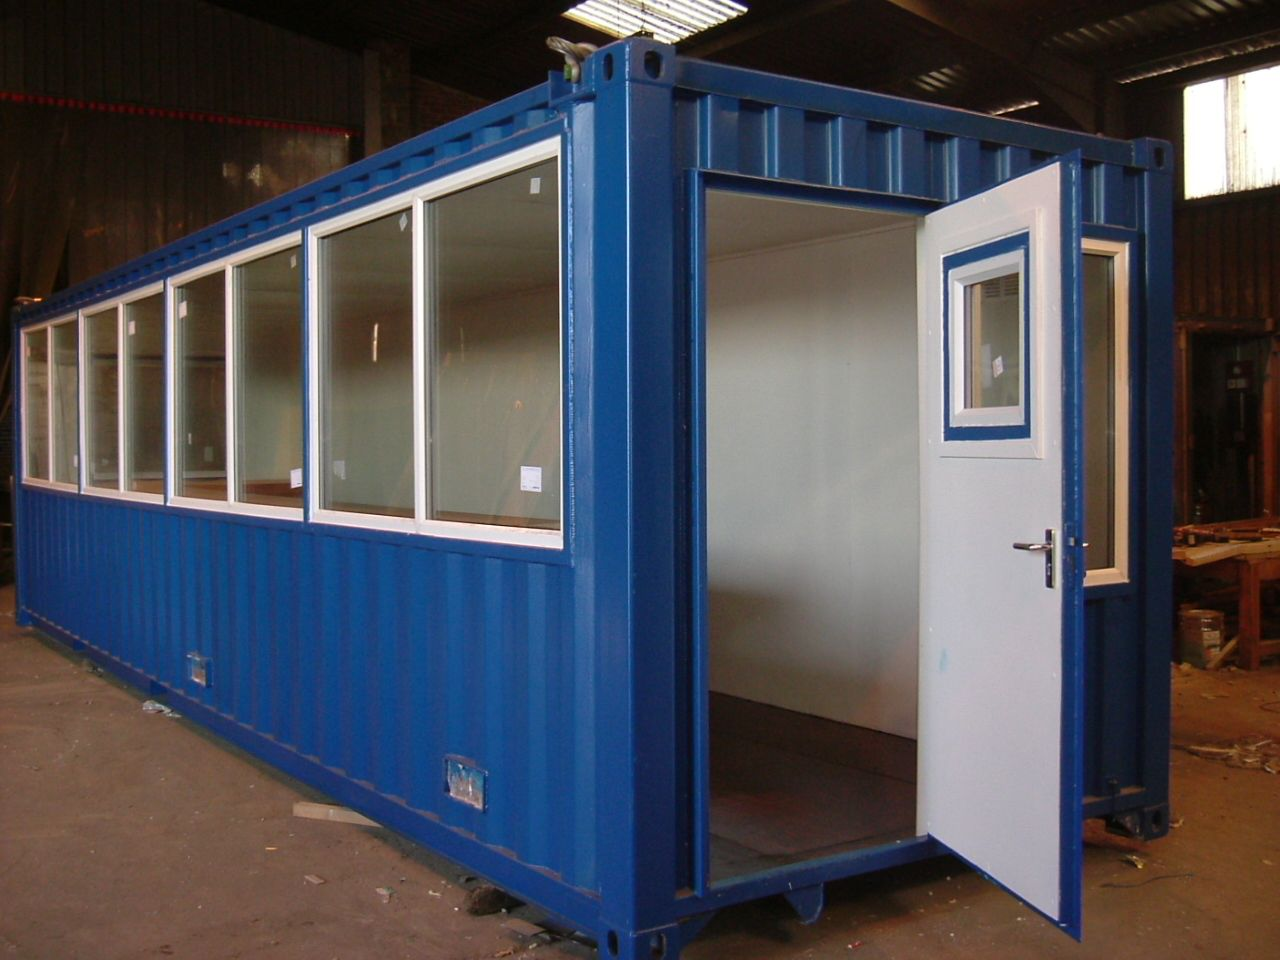 30ft x 8ft Offshore Control Room Shipping container